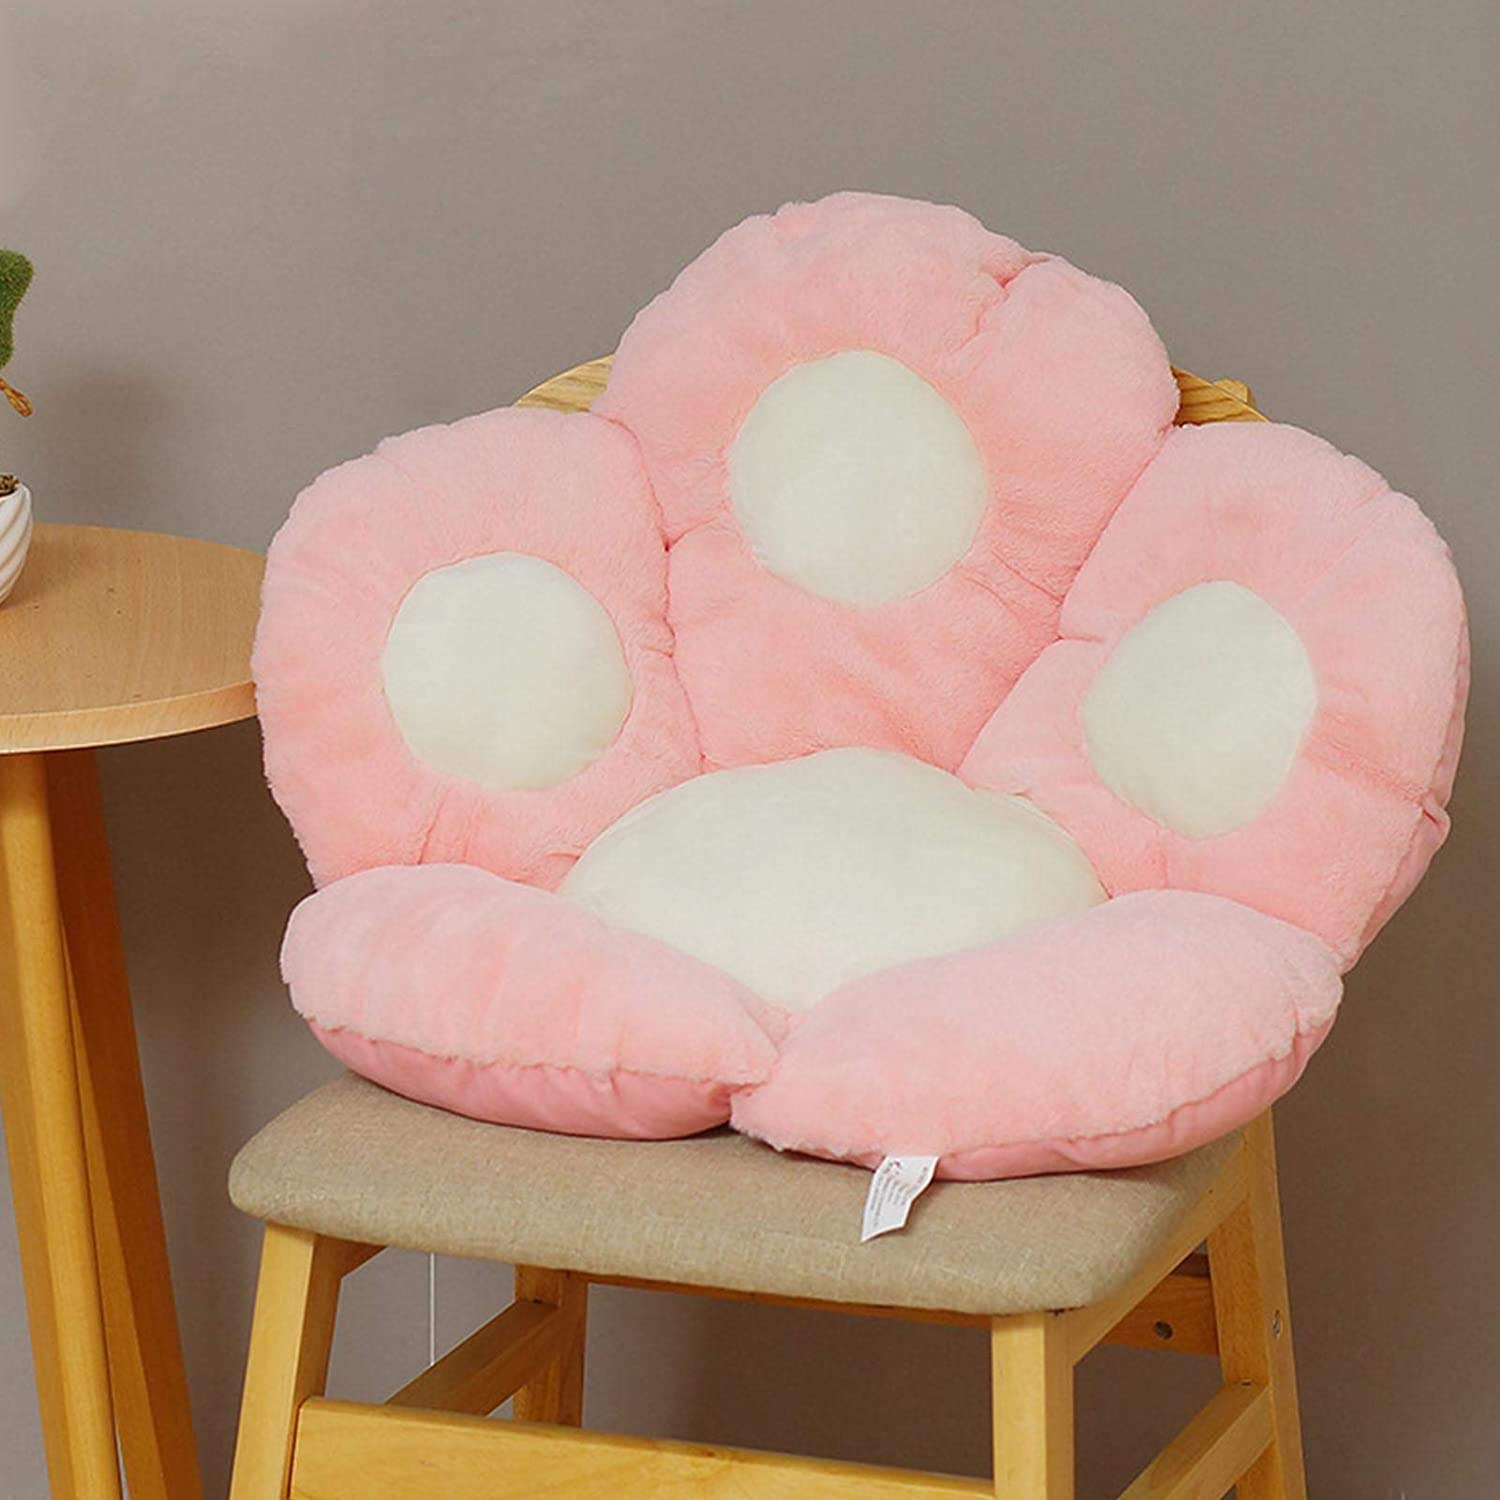 Cute Seat Cushion,Seat Pad,Cat Paw Shape Lazy Sofa Office Chair Cushion, Kawaii Plush Floor Mat Seat Cushions for Dining Room Chairs (Pink, 24×28×3.9in) (Pink, 24×28×3.9in)